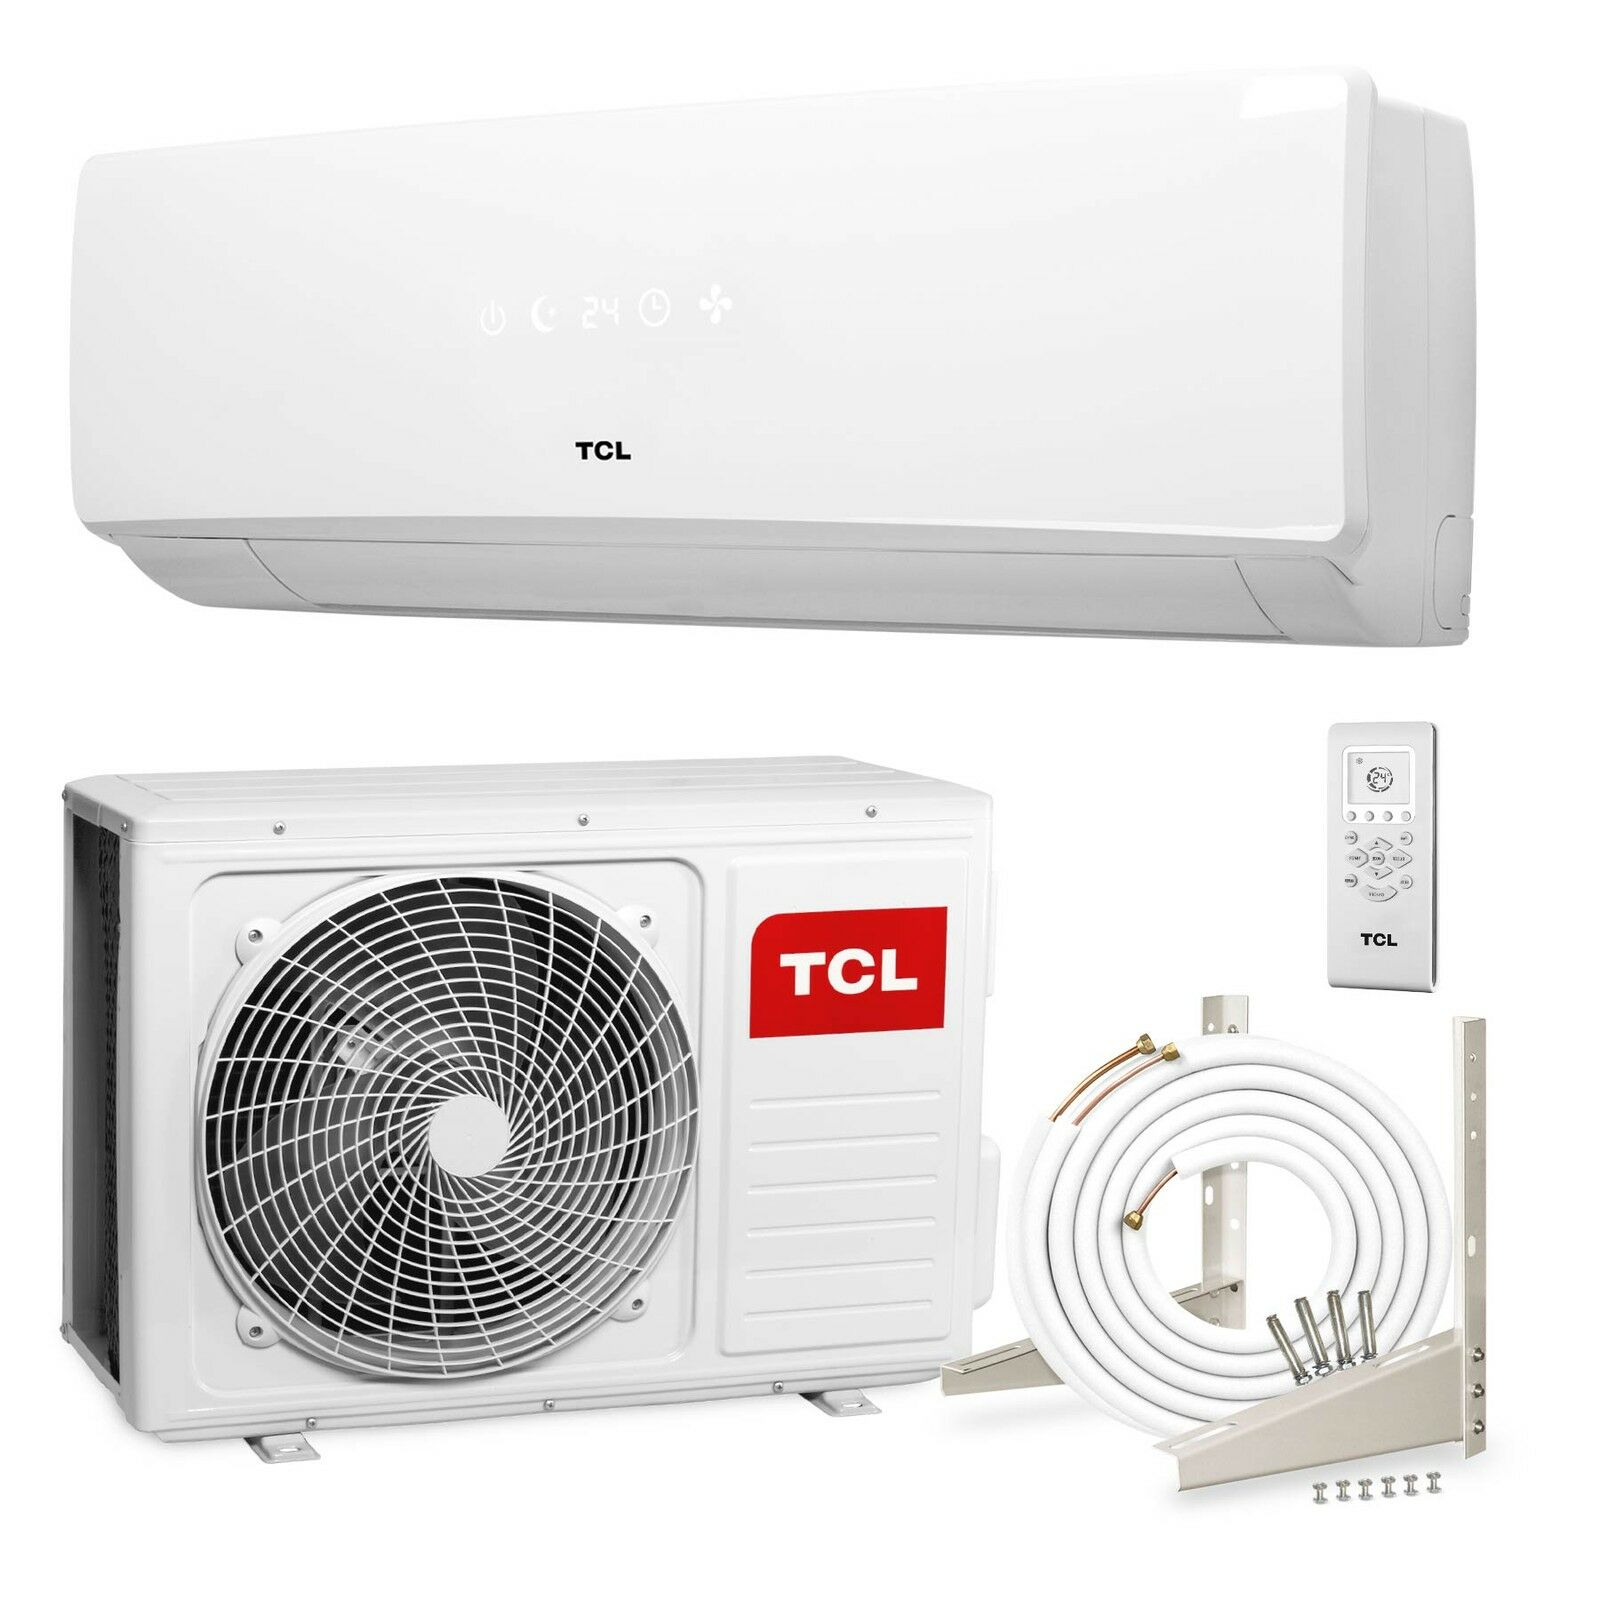 tcl inverter split klimaanlage 24000 btu 6 4kw klima klimager t modell ka eur 999 00. Black Bedroom Furniture Sets. Home Design Ideas